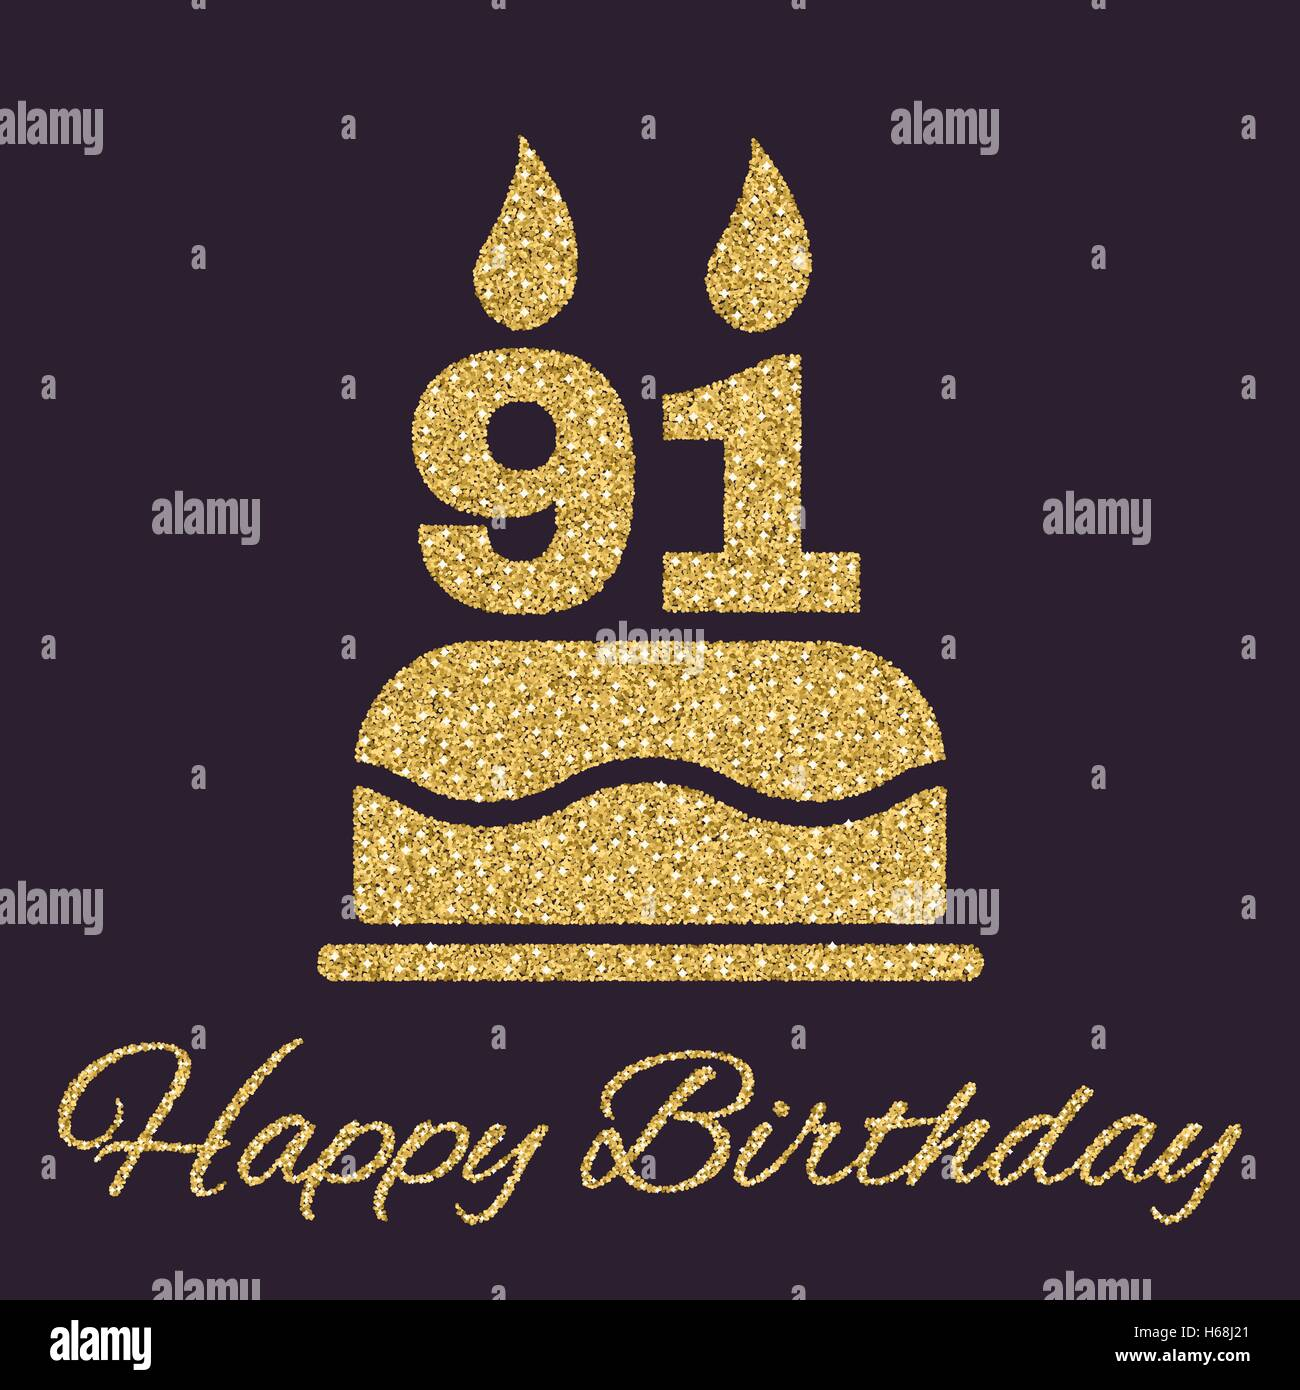 The Birthday Cake With Candles In Form Of Number 91 Icon Symbol Gold Sparkles And Glitter